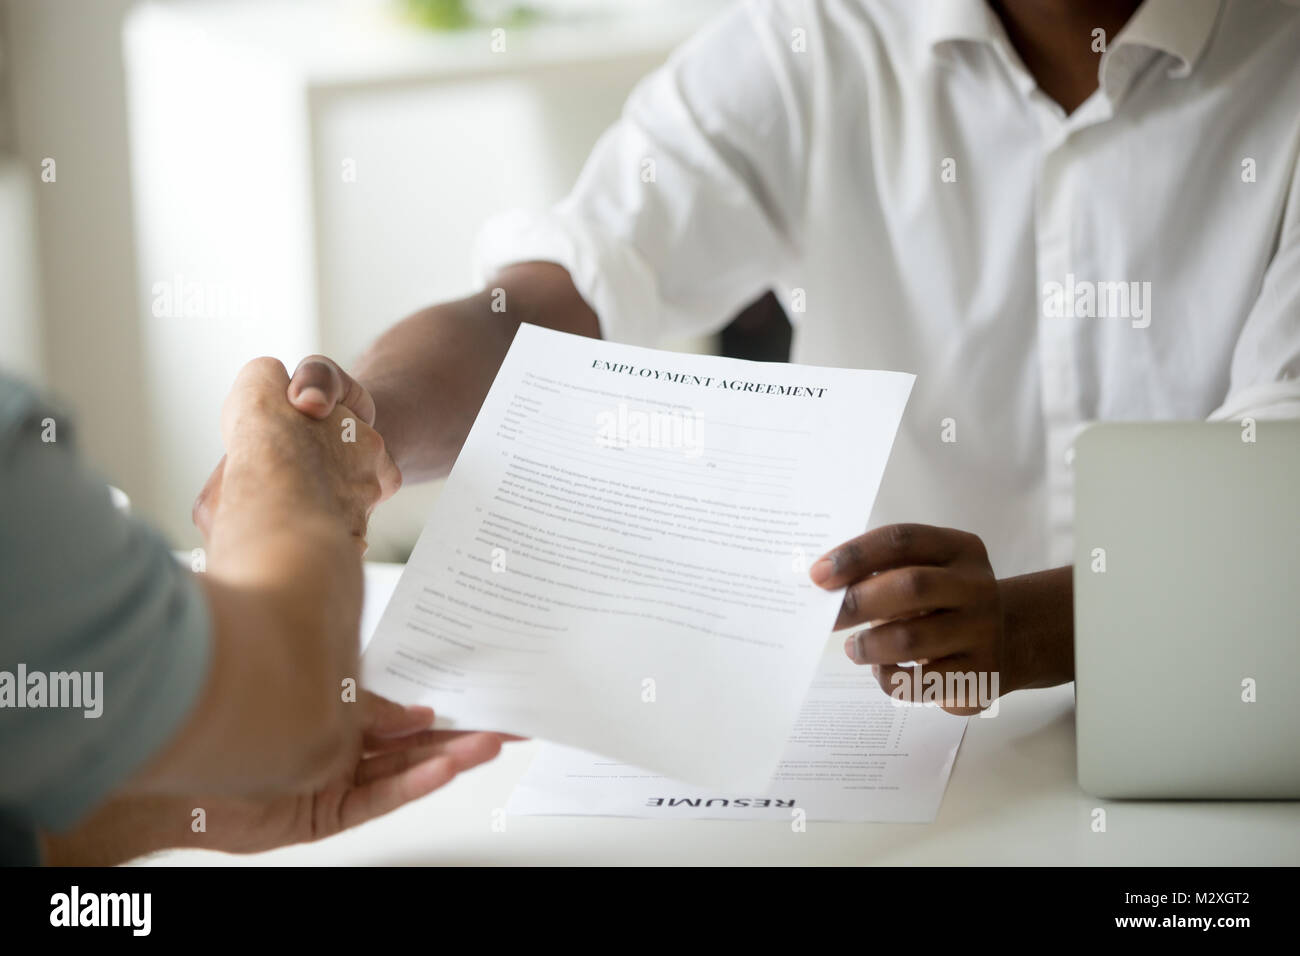 African american employer holding employment agreement offering new job welcoming successful vacancy candidate, - Stock Image